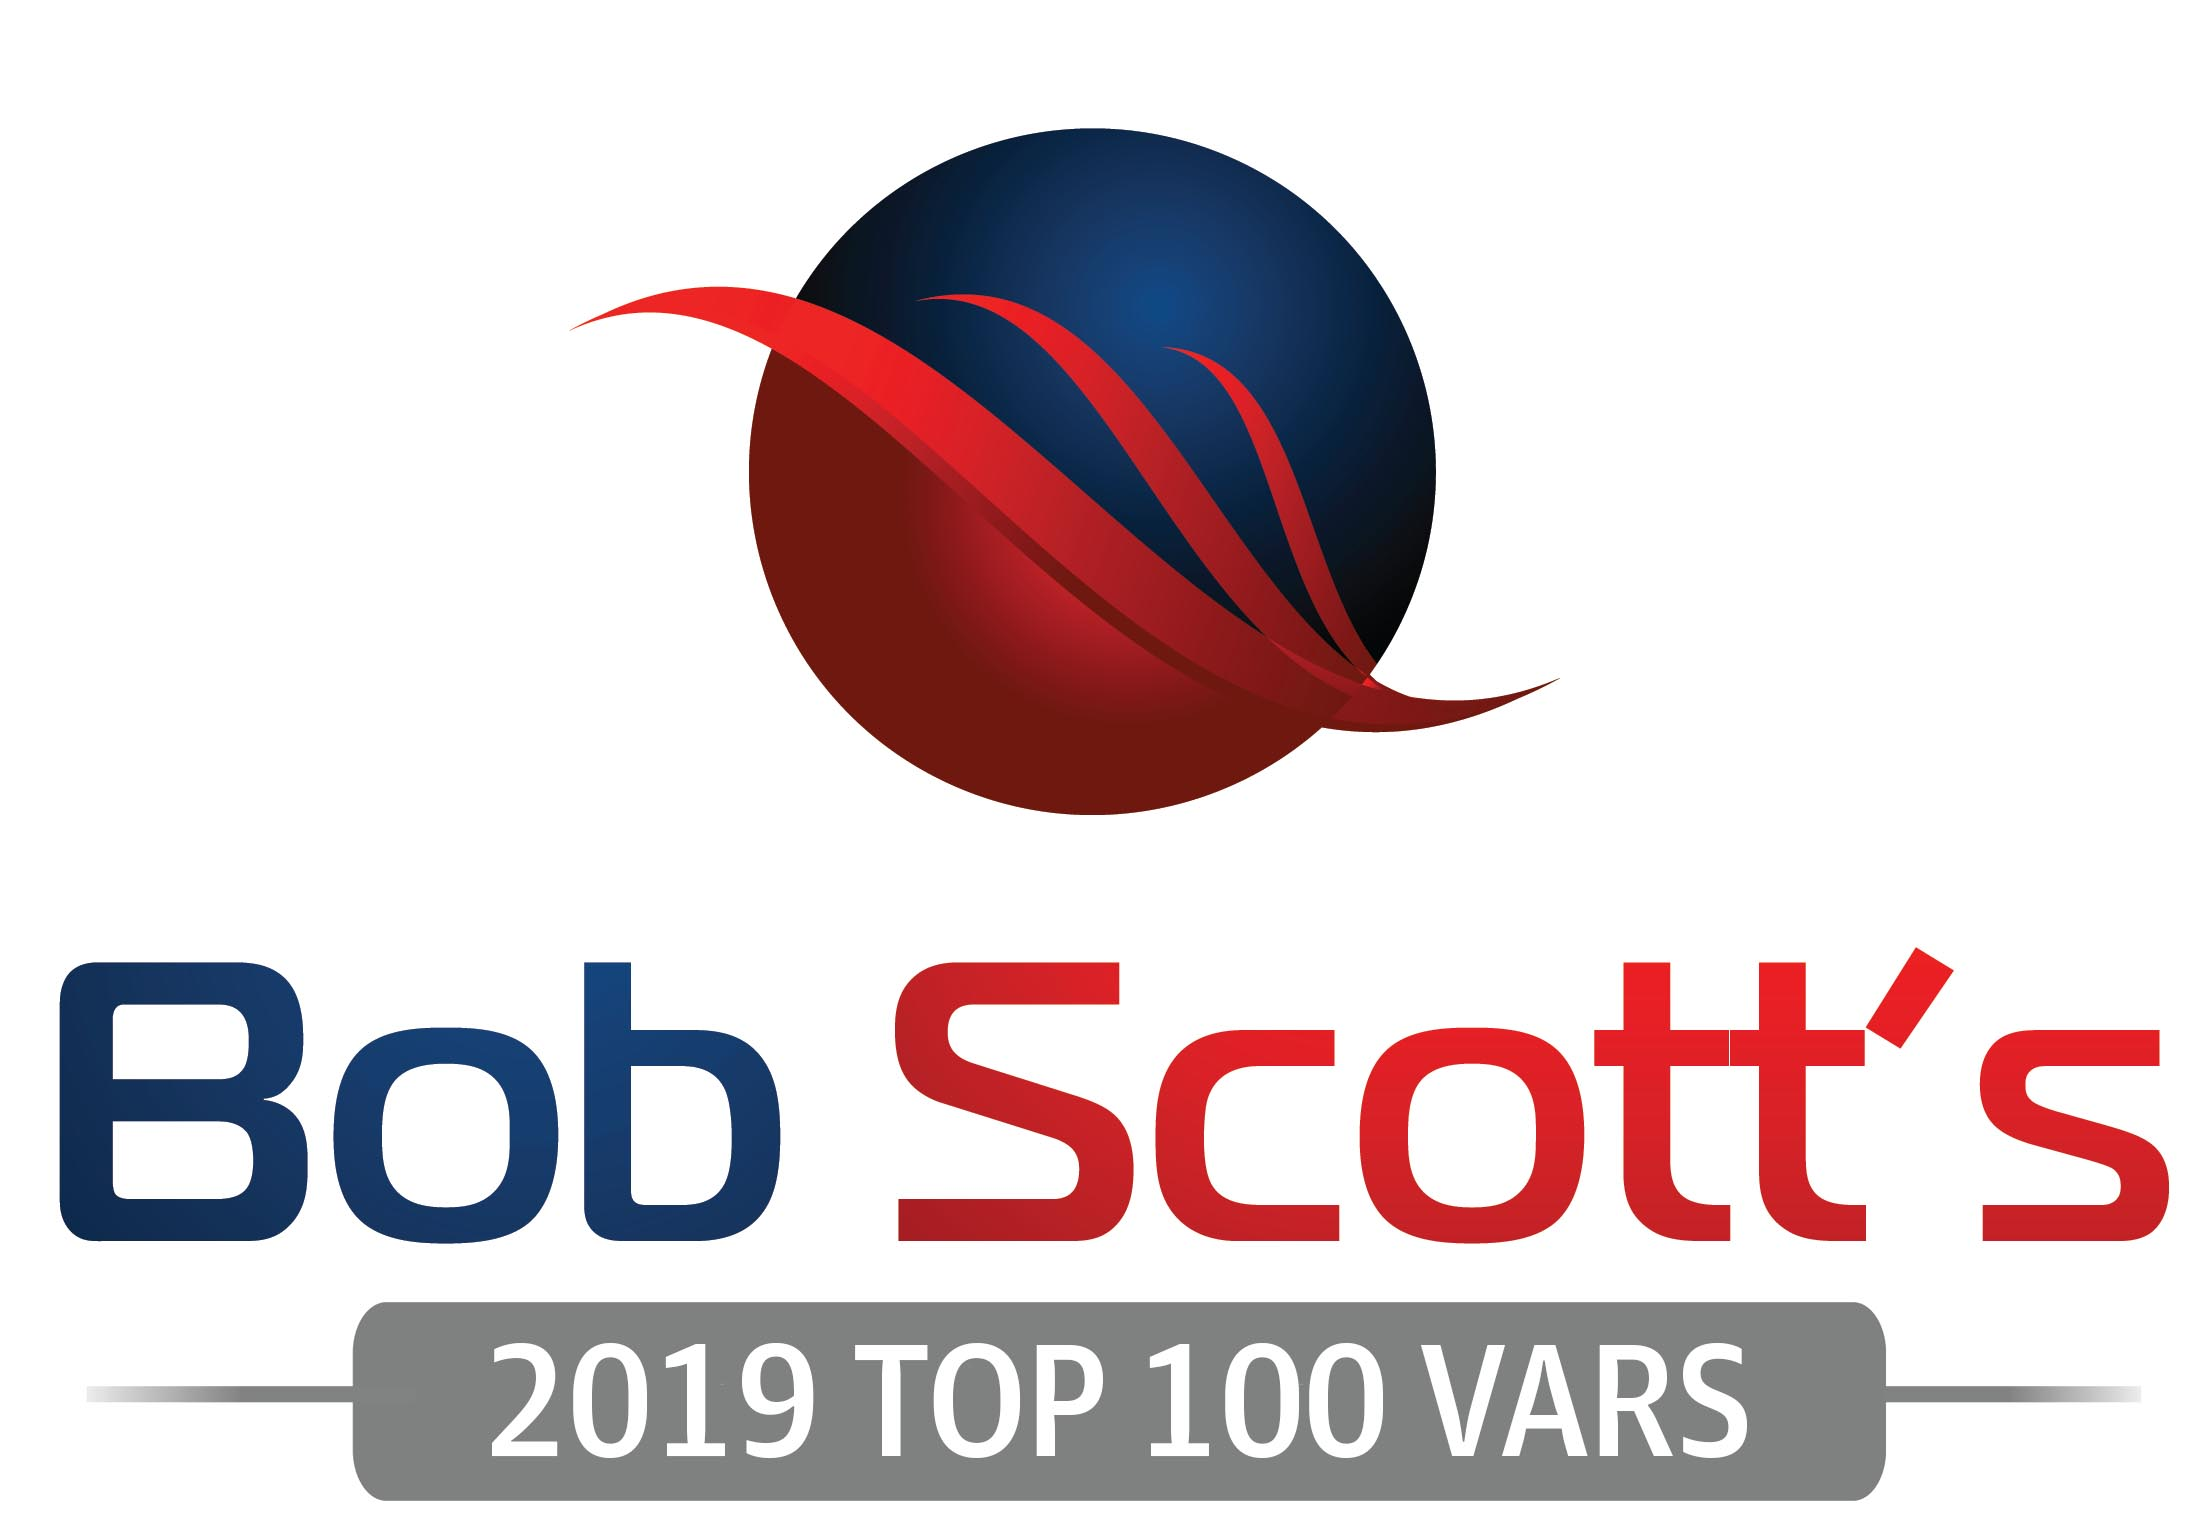 AcctTwo named to list of Top 100 VARs for fourth consecutive year